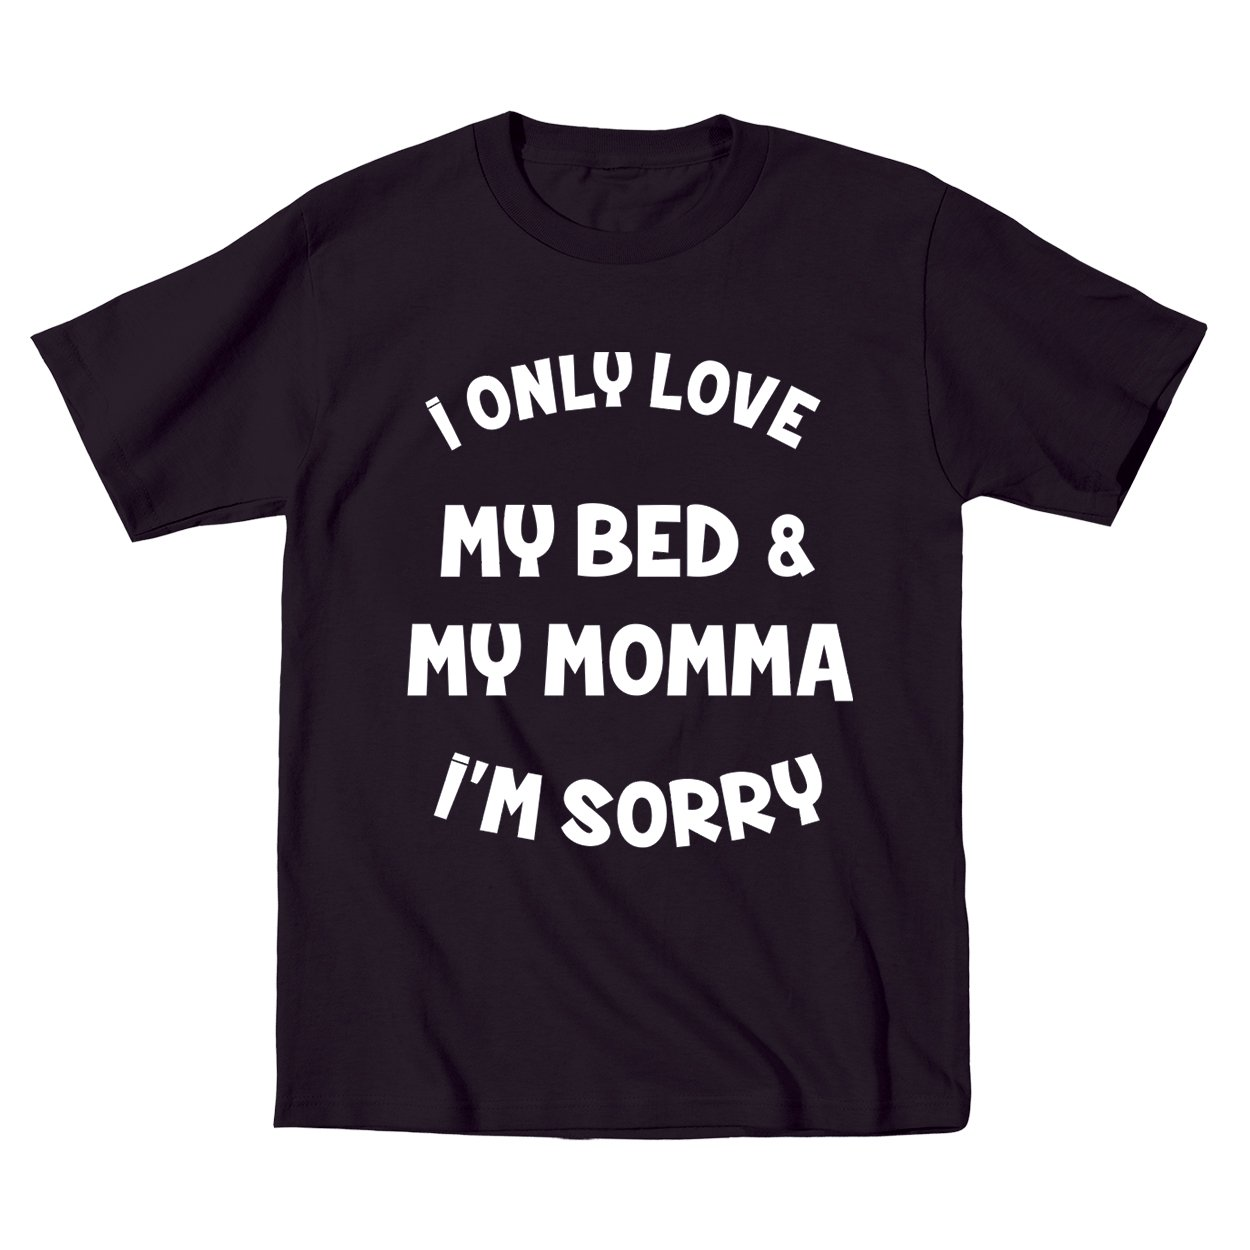 I Only Love My Bed and My Momma I'm Sorry Toddler Shirt 3T Black